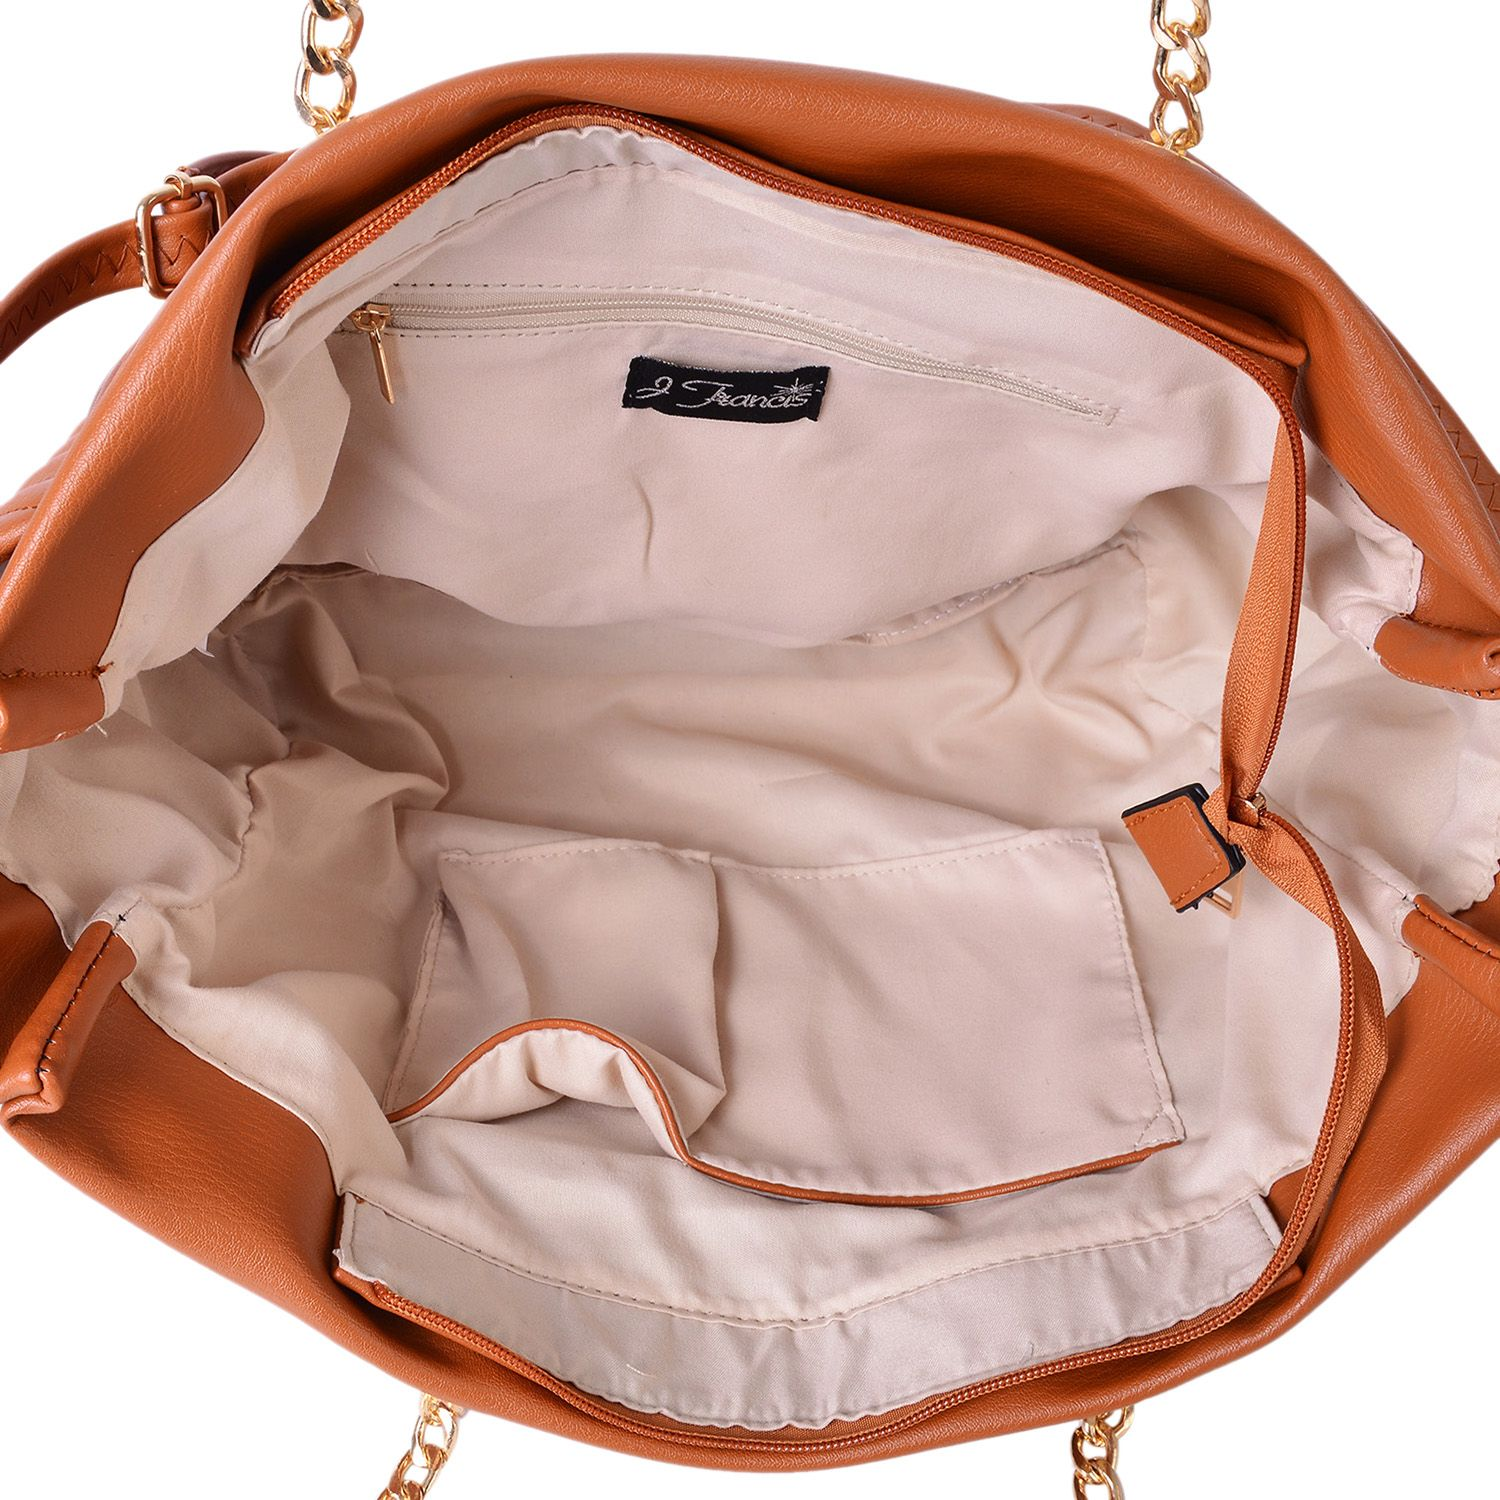 9cae1deaee0d ... Camel Quilted Chevron Pattern Faux Leather Trapezoid Shoulder Bag with  Removable Strap (17x6x11 in)